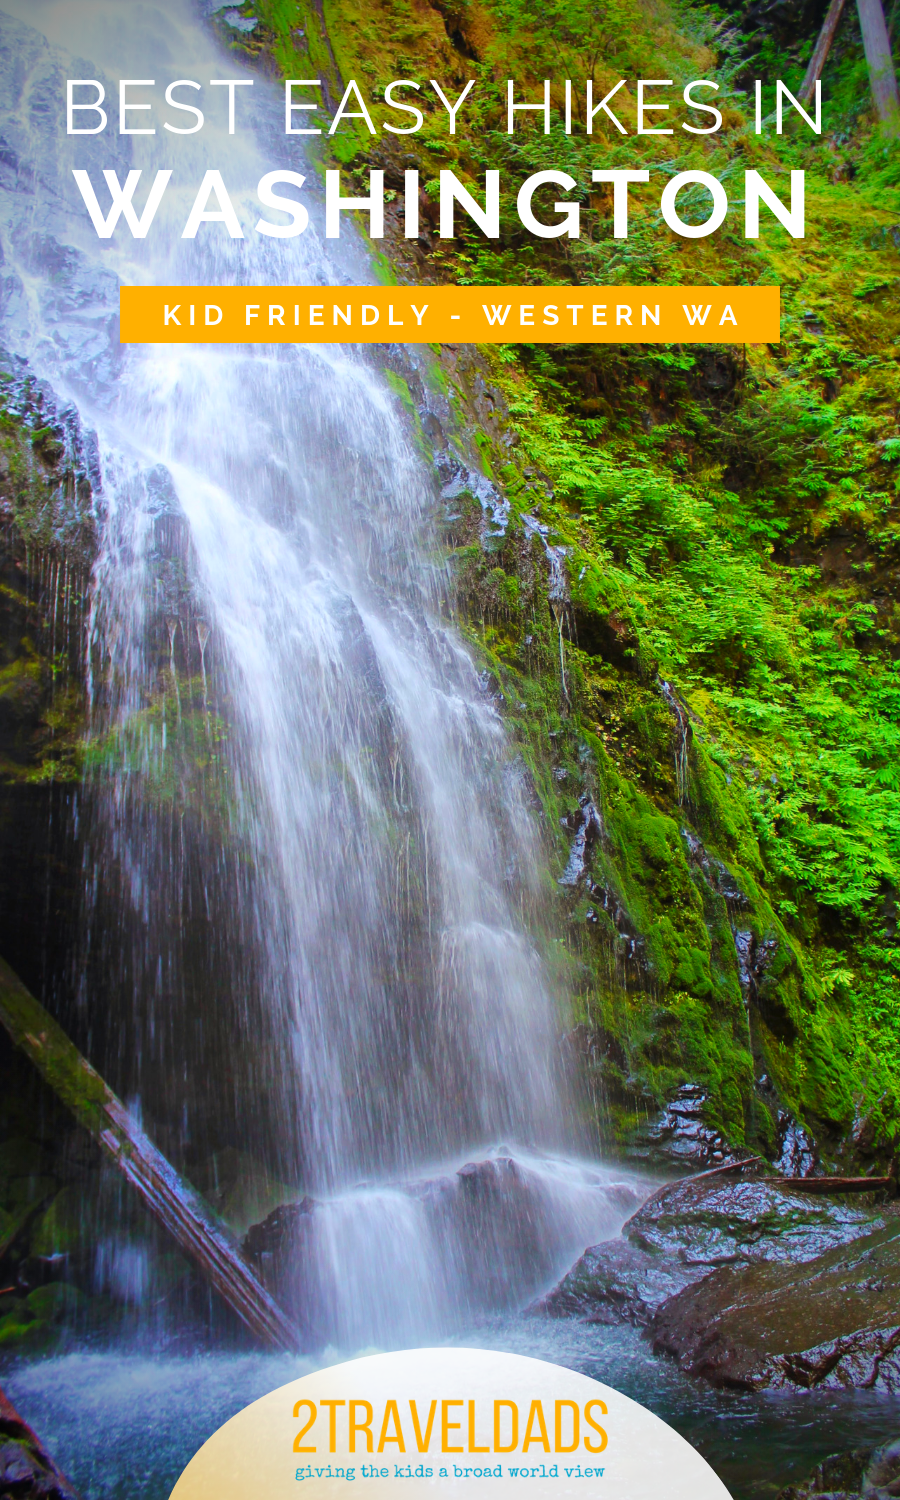 Easy hiking trails around Western Washington. Kid friendly hikes in Olympic National Park, the Columbia Gorge and even around Seattle. #hiking #nature #Seattle #PacificNorthwest